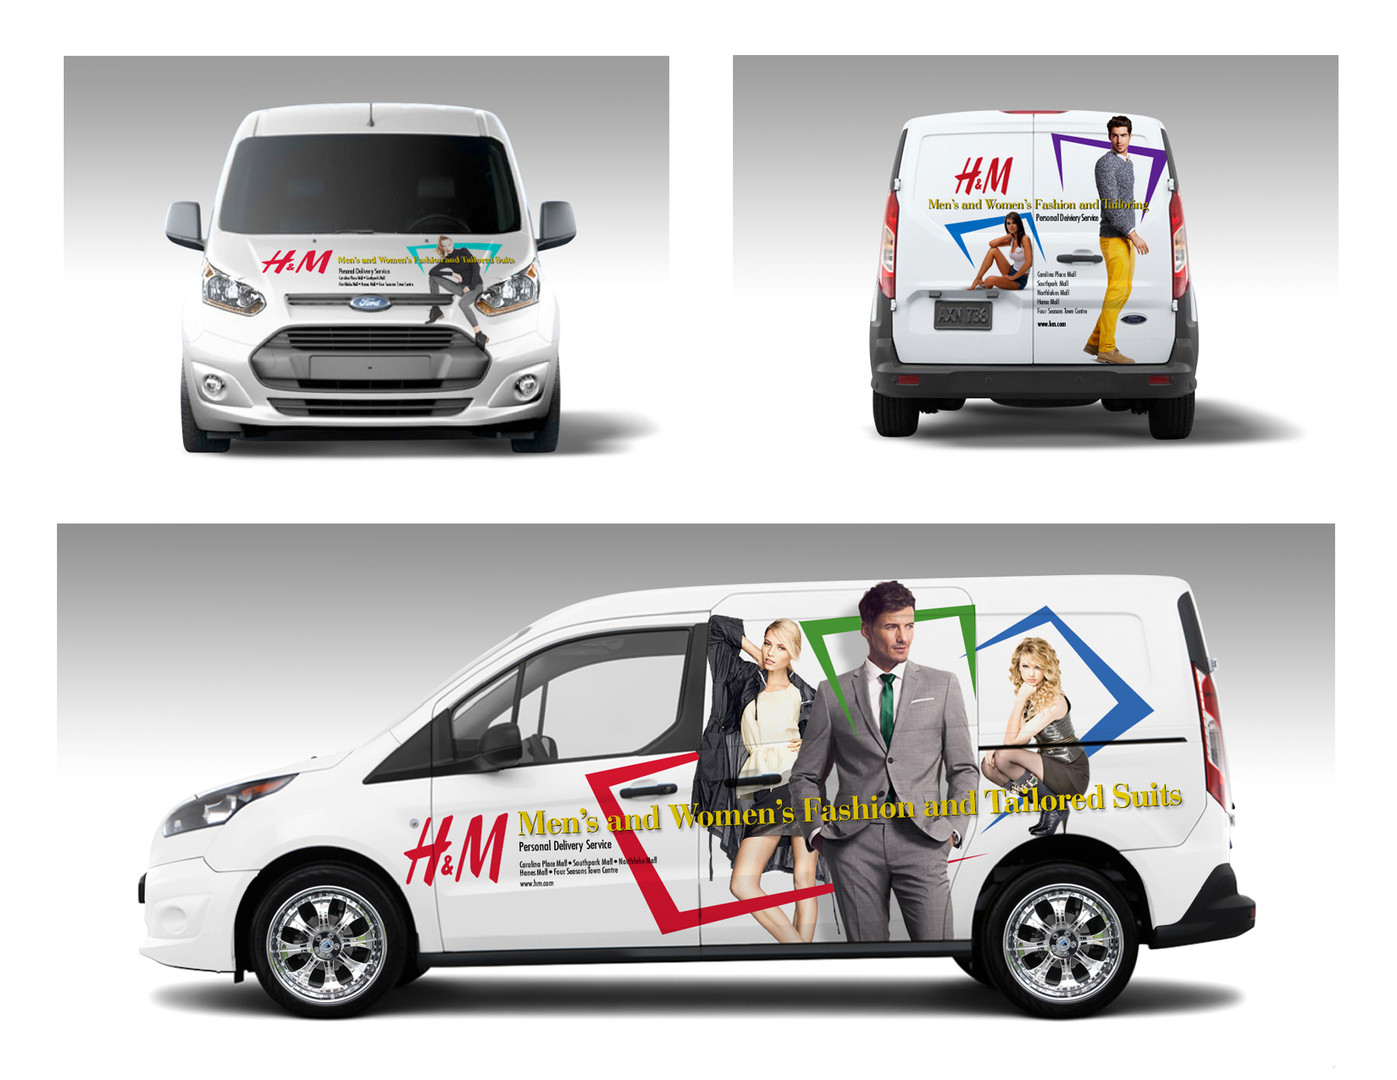 H&M Vehicle Graphics 72dpi.jpg